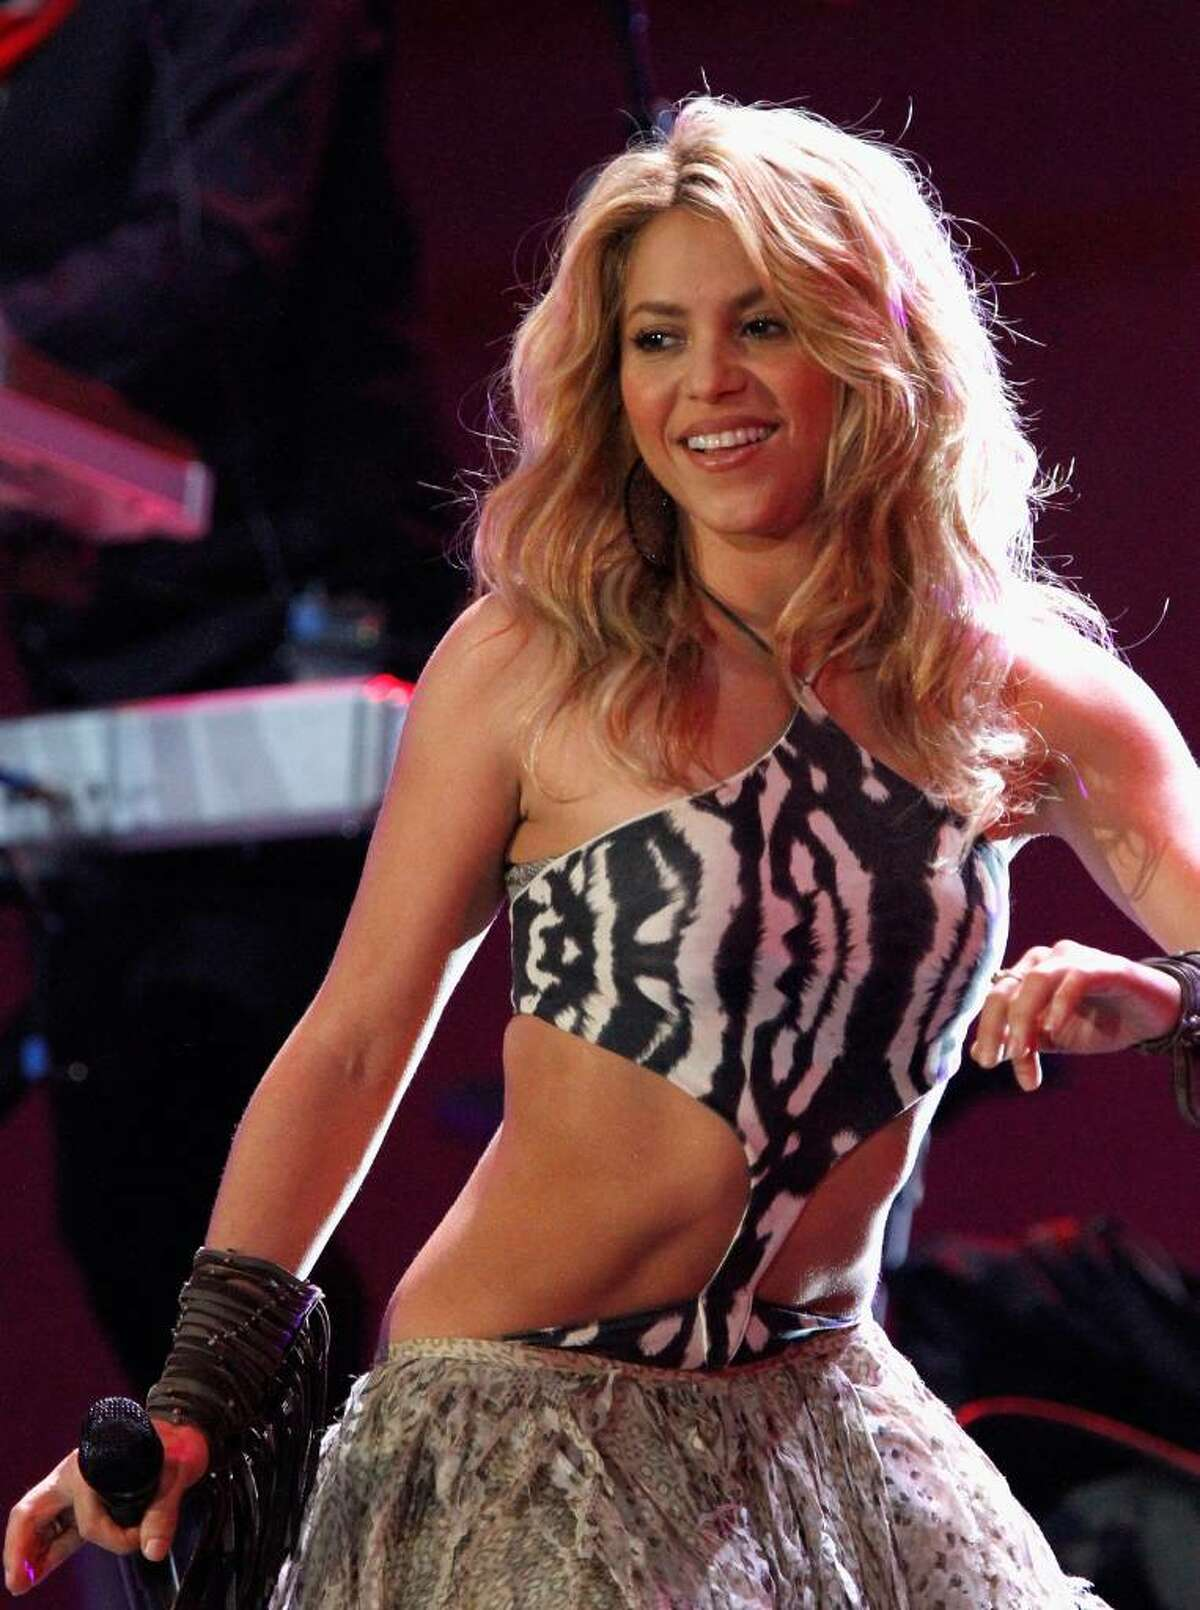 JOHANNESBURG, SOUTH AFRICA - JUNE 10: Singer Shakira performs on stage during the FIFA World Cup Kick-off Celebration Concert at the Orlando Stadium on June 10, 2010 in Johannesburg, South Africa. (Photo by Michelly Rall/Getty Images for Live Earth Events) *** Local Caption *** Shakira